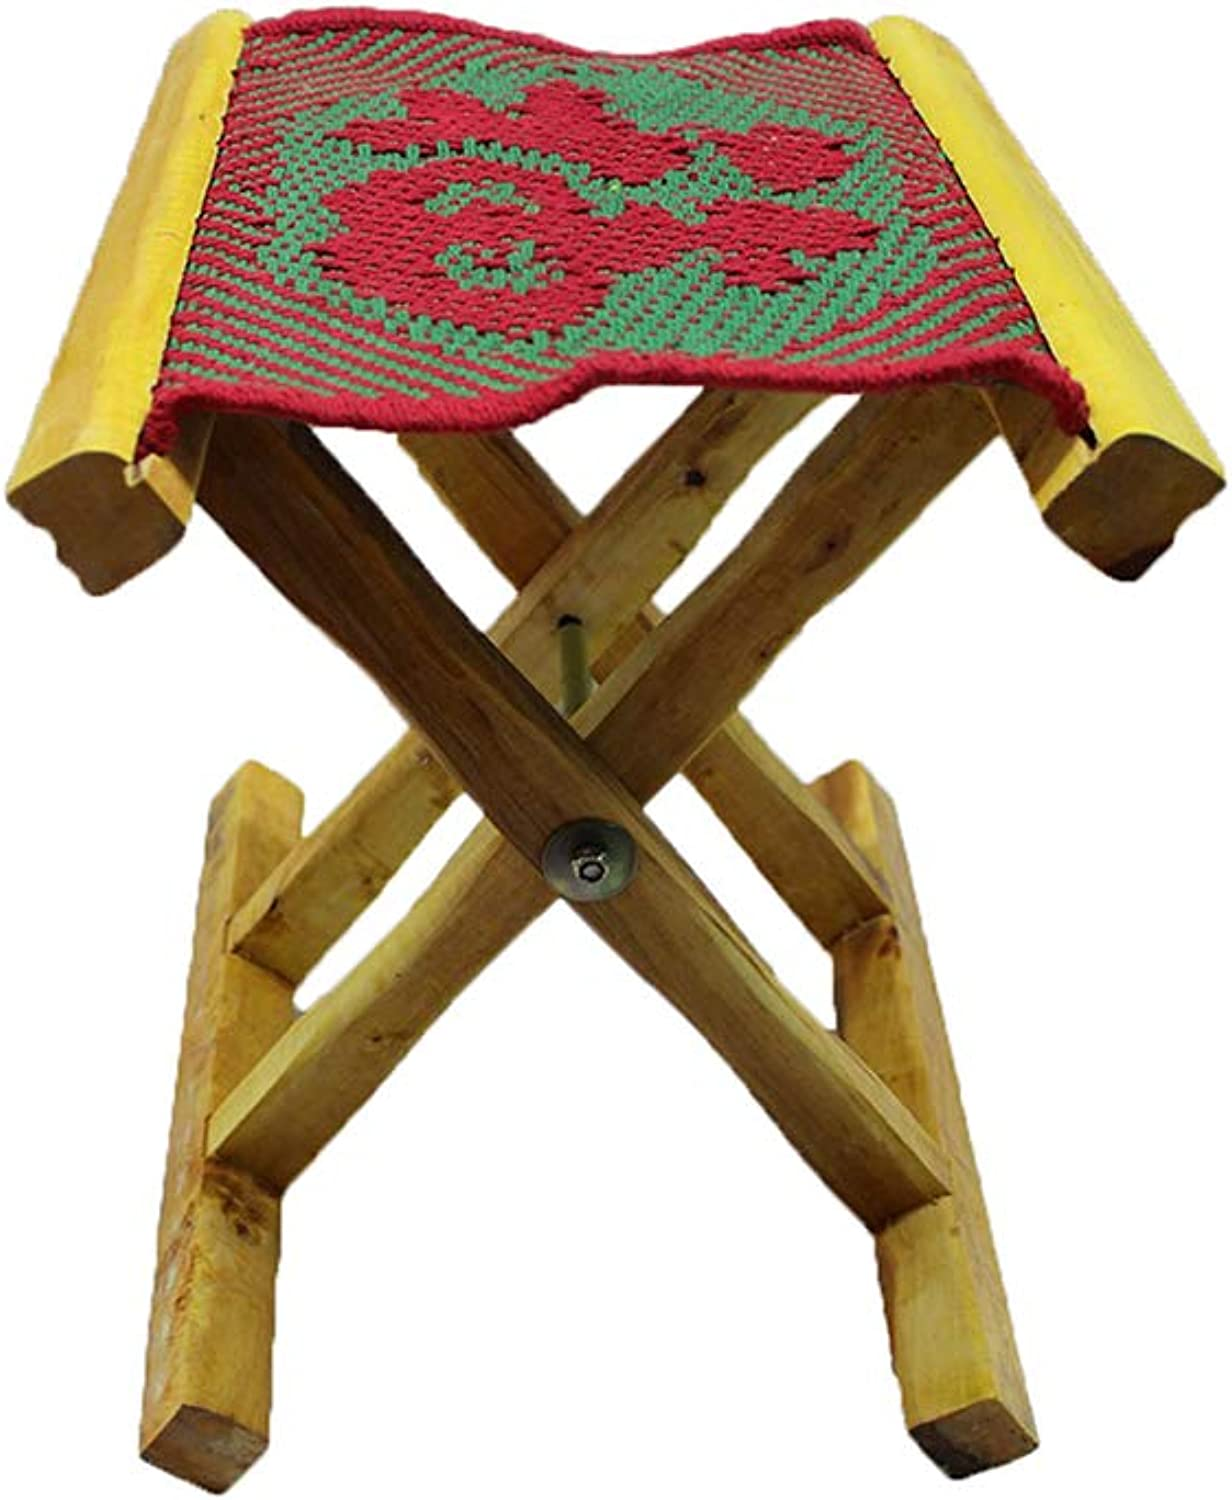 YQQ Portable Folding Stool Small Bench Solid Wood Mazar Fishing Stool Makeup Stool Fu Word Weave Sketch Stool